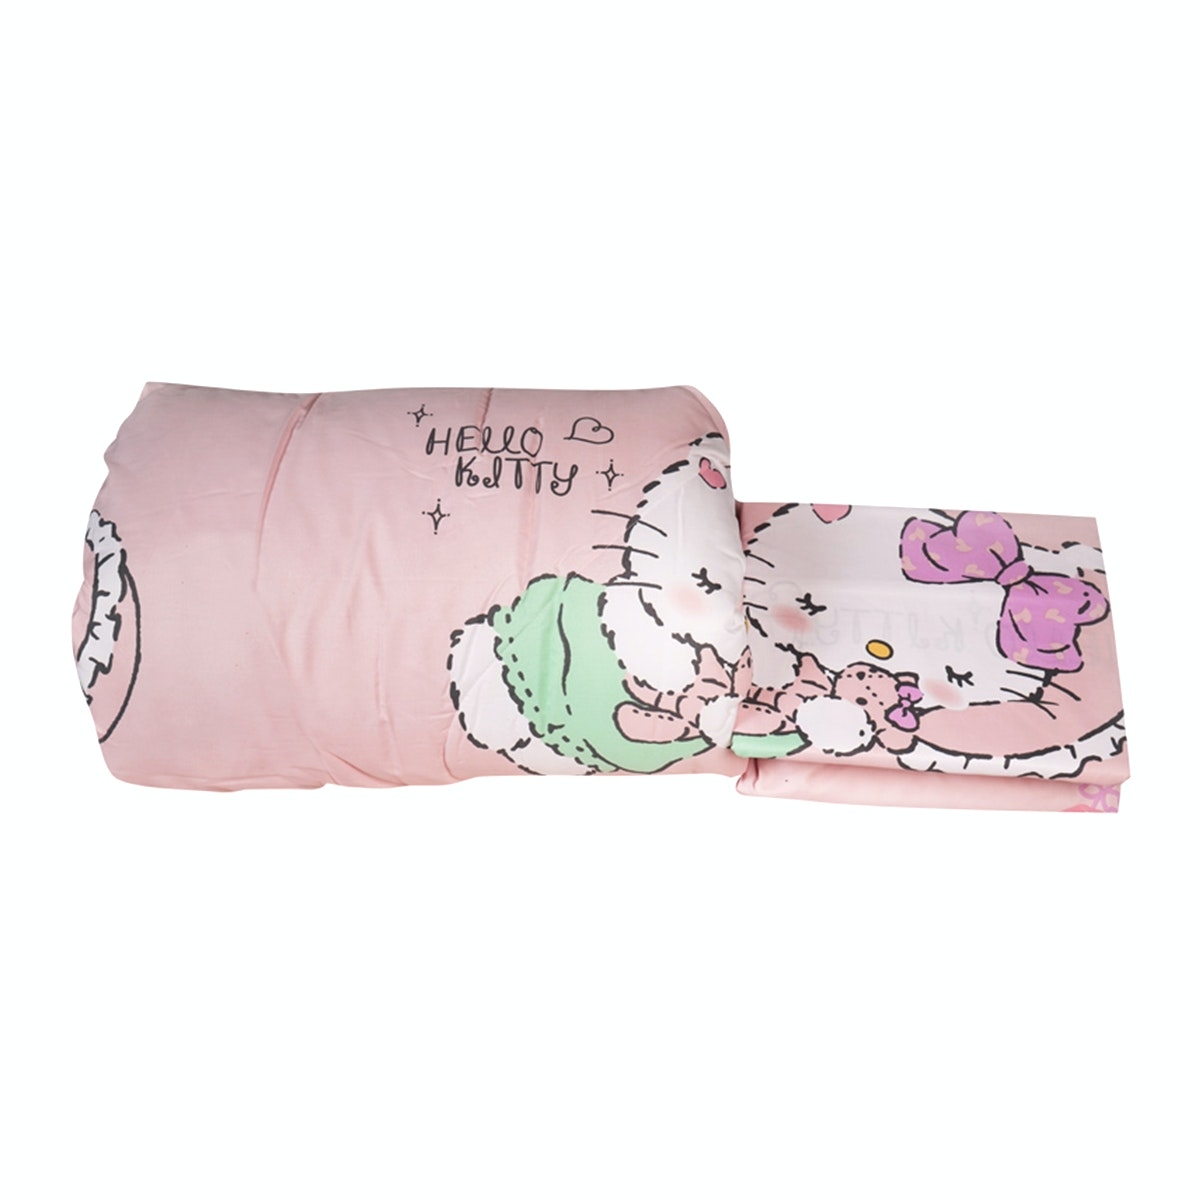 Rise Sprei Set Bed Cover Hello Kitty Girlyroom Original Sanrio license 180X200X35 King size pink